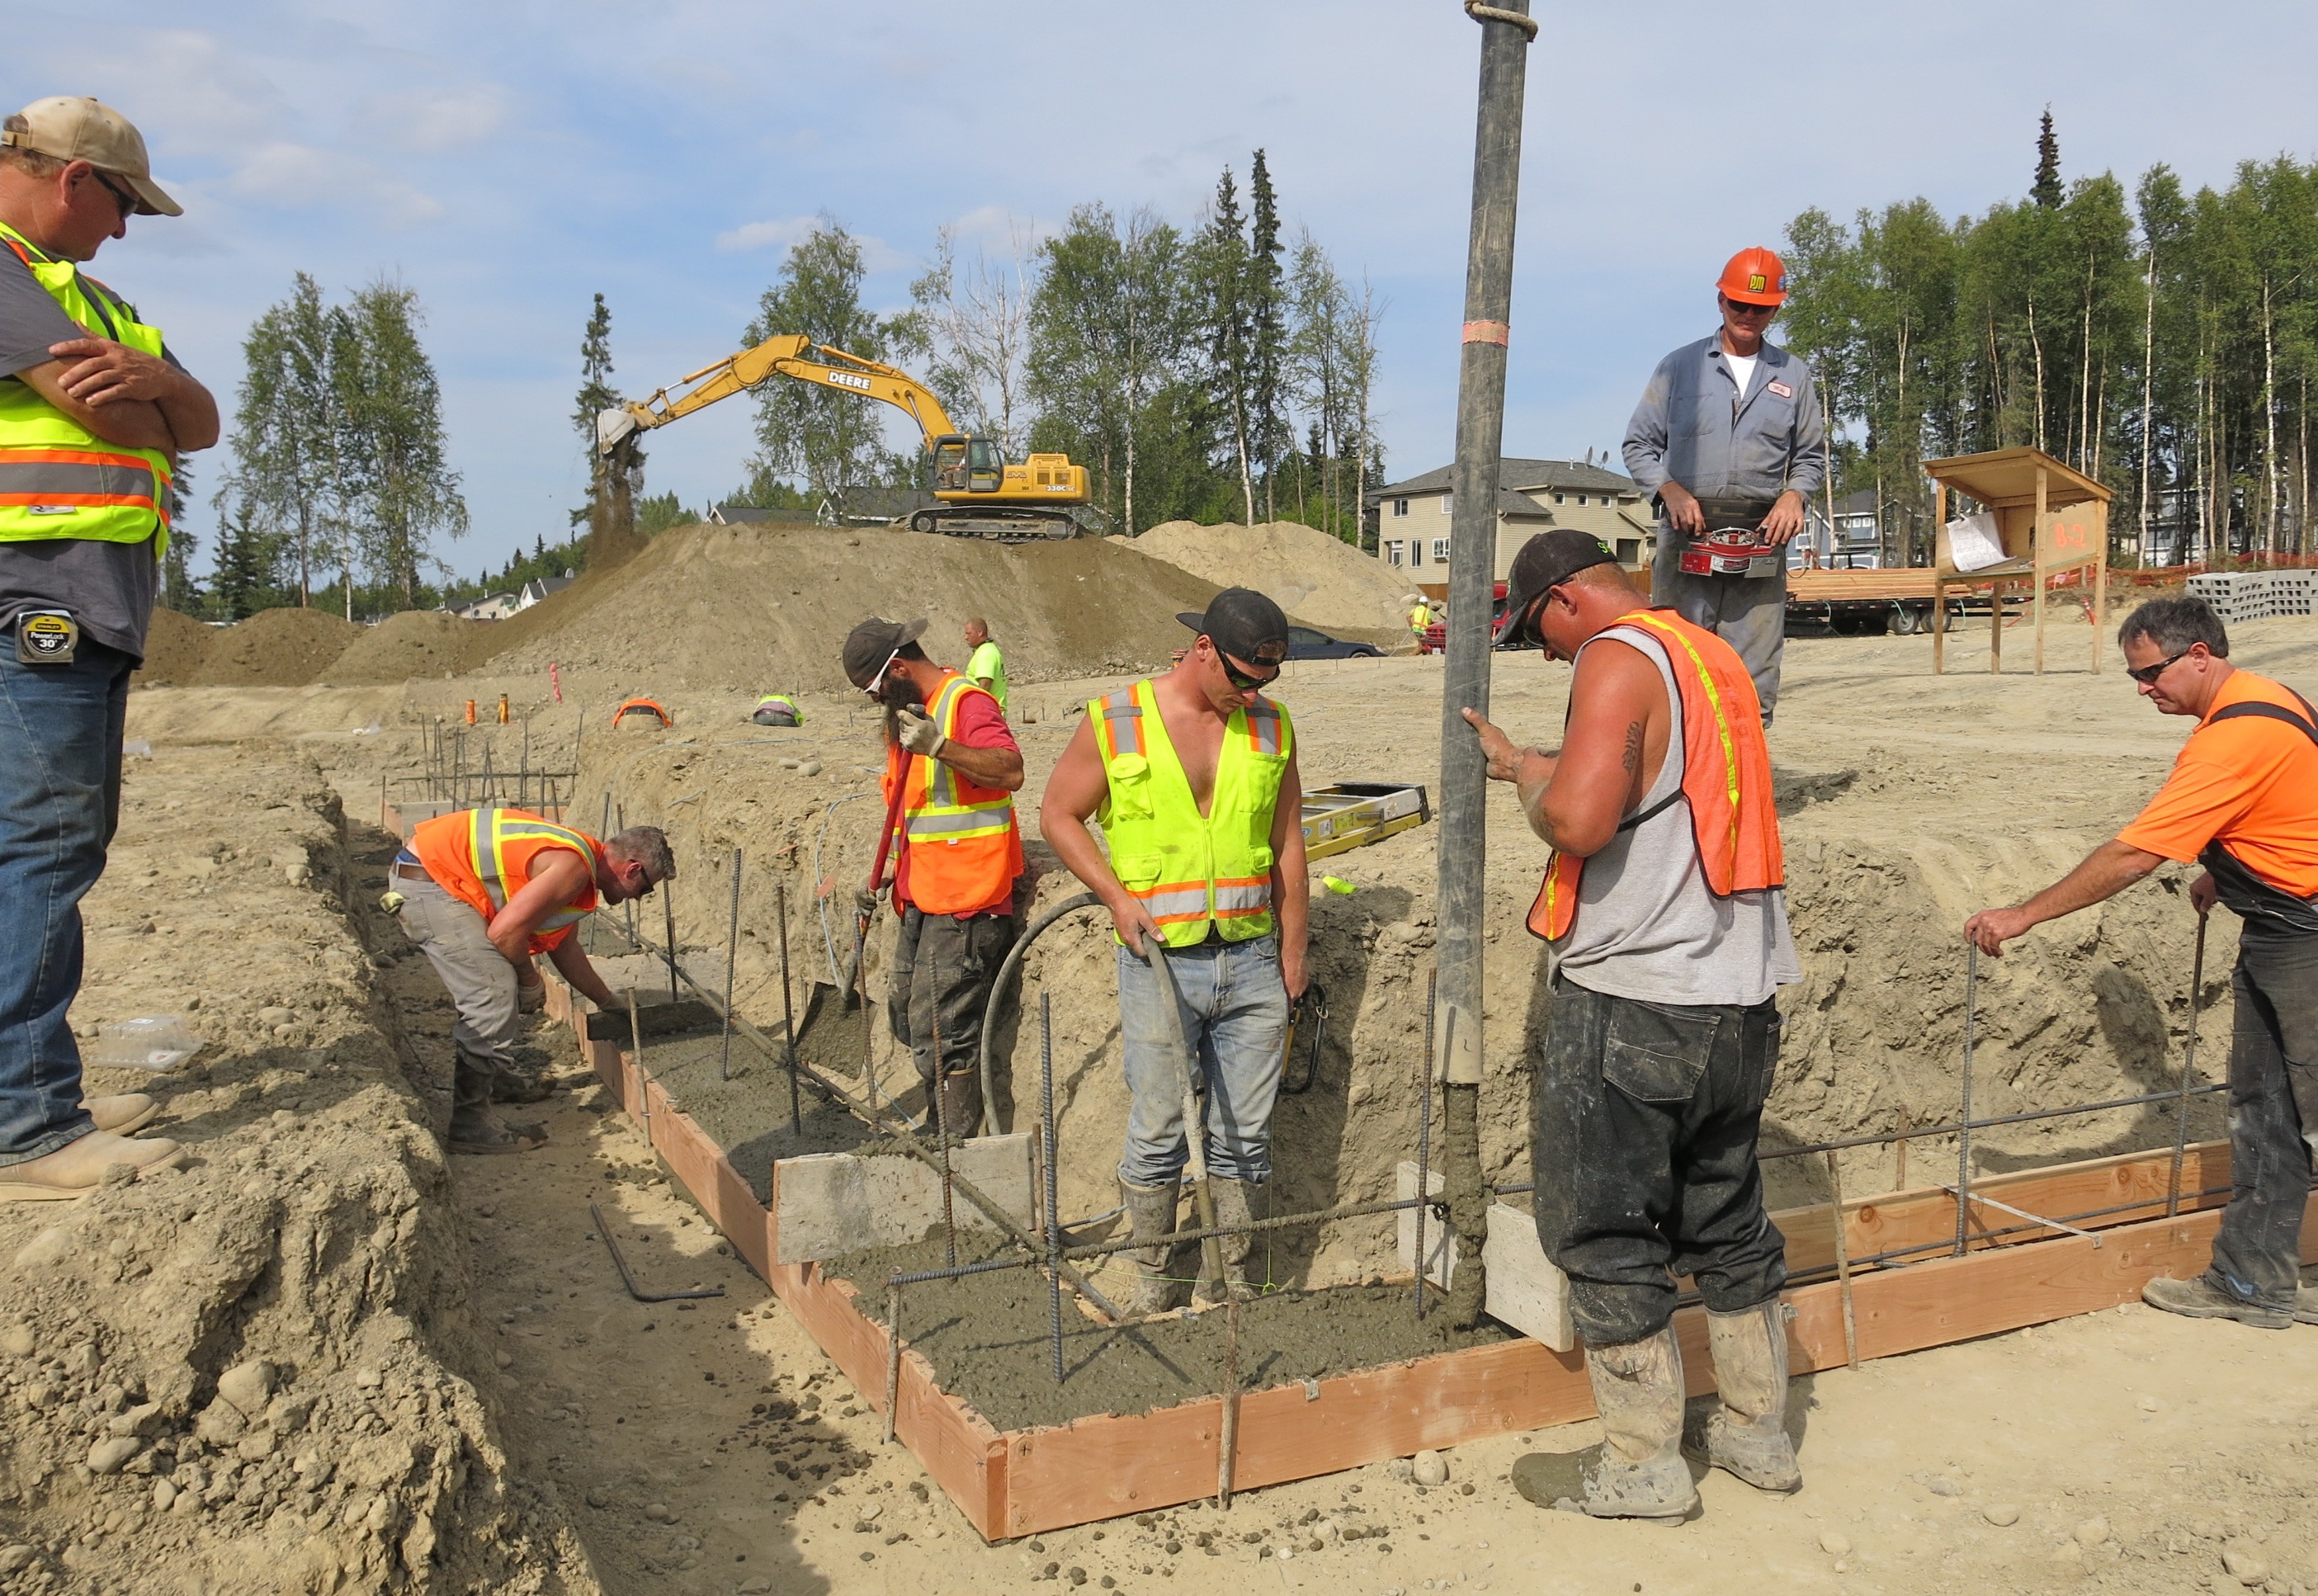 Pouring concrete, Aug 6, 2015